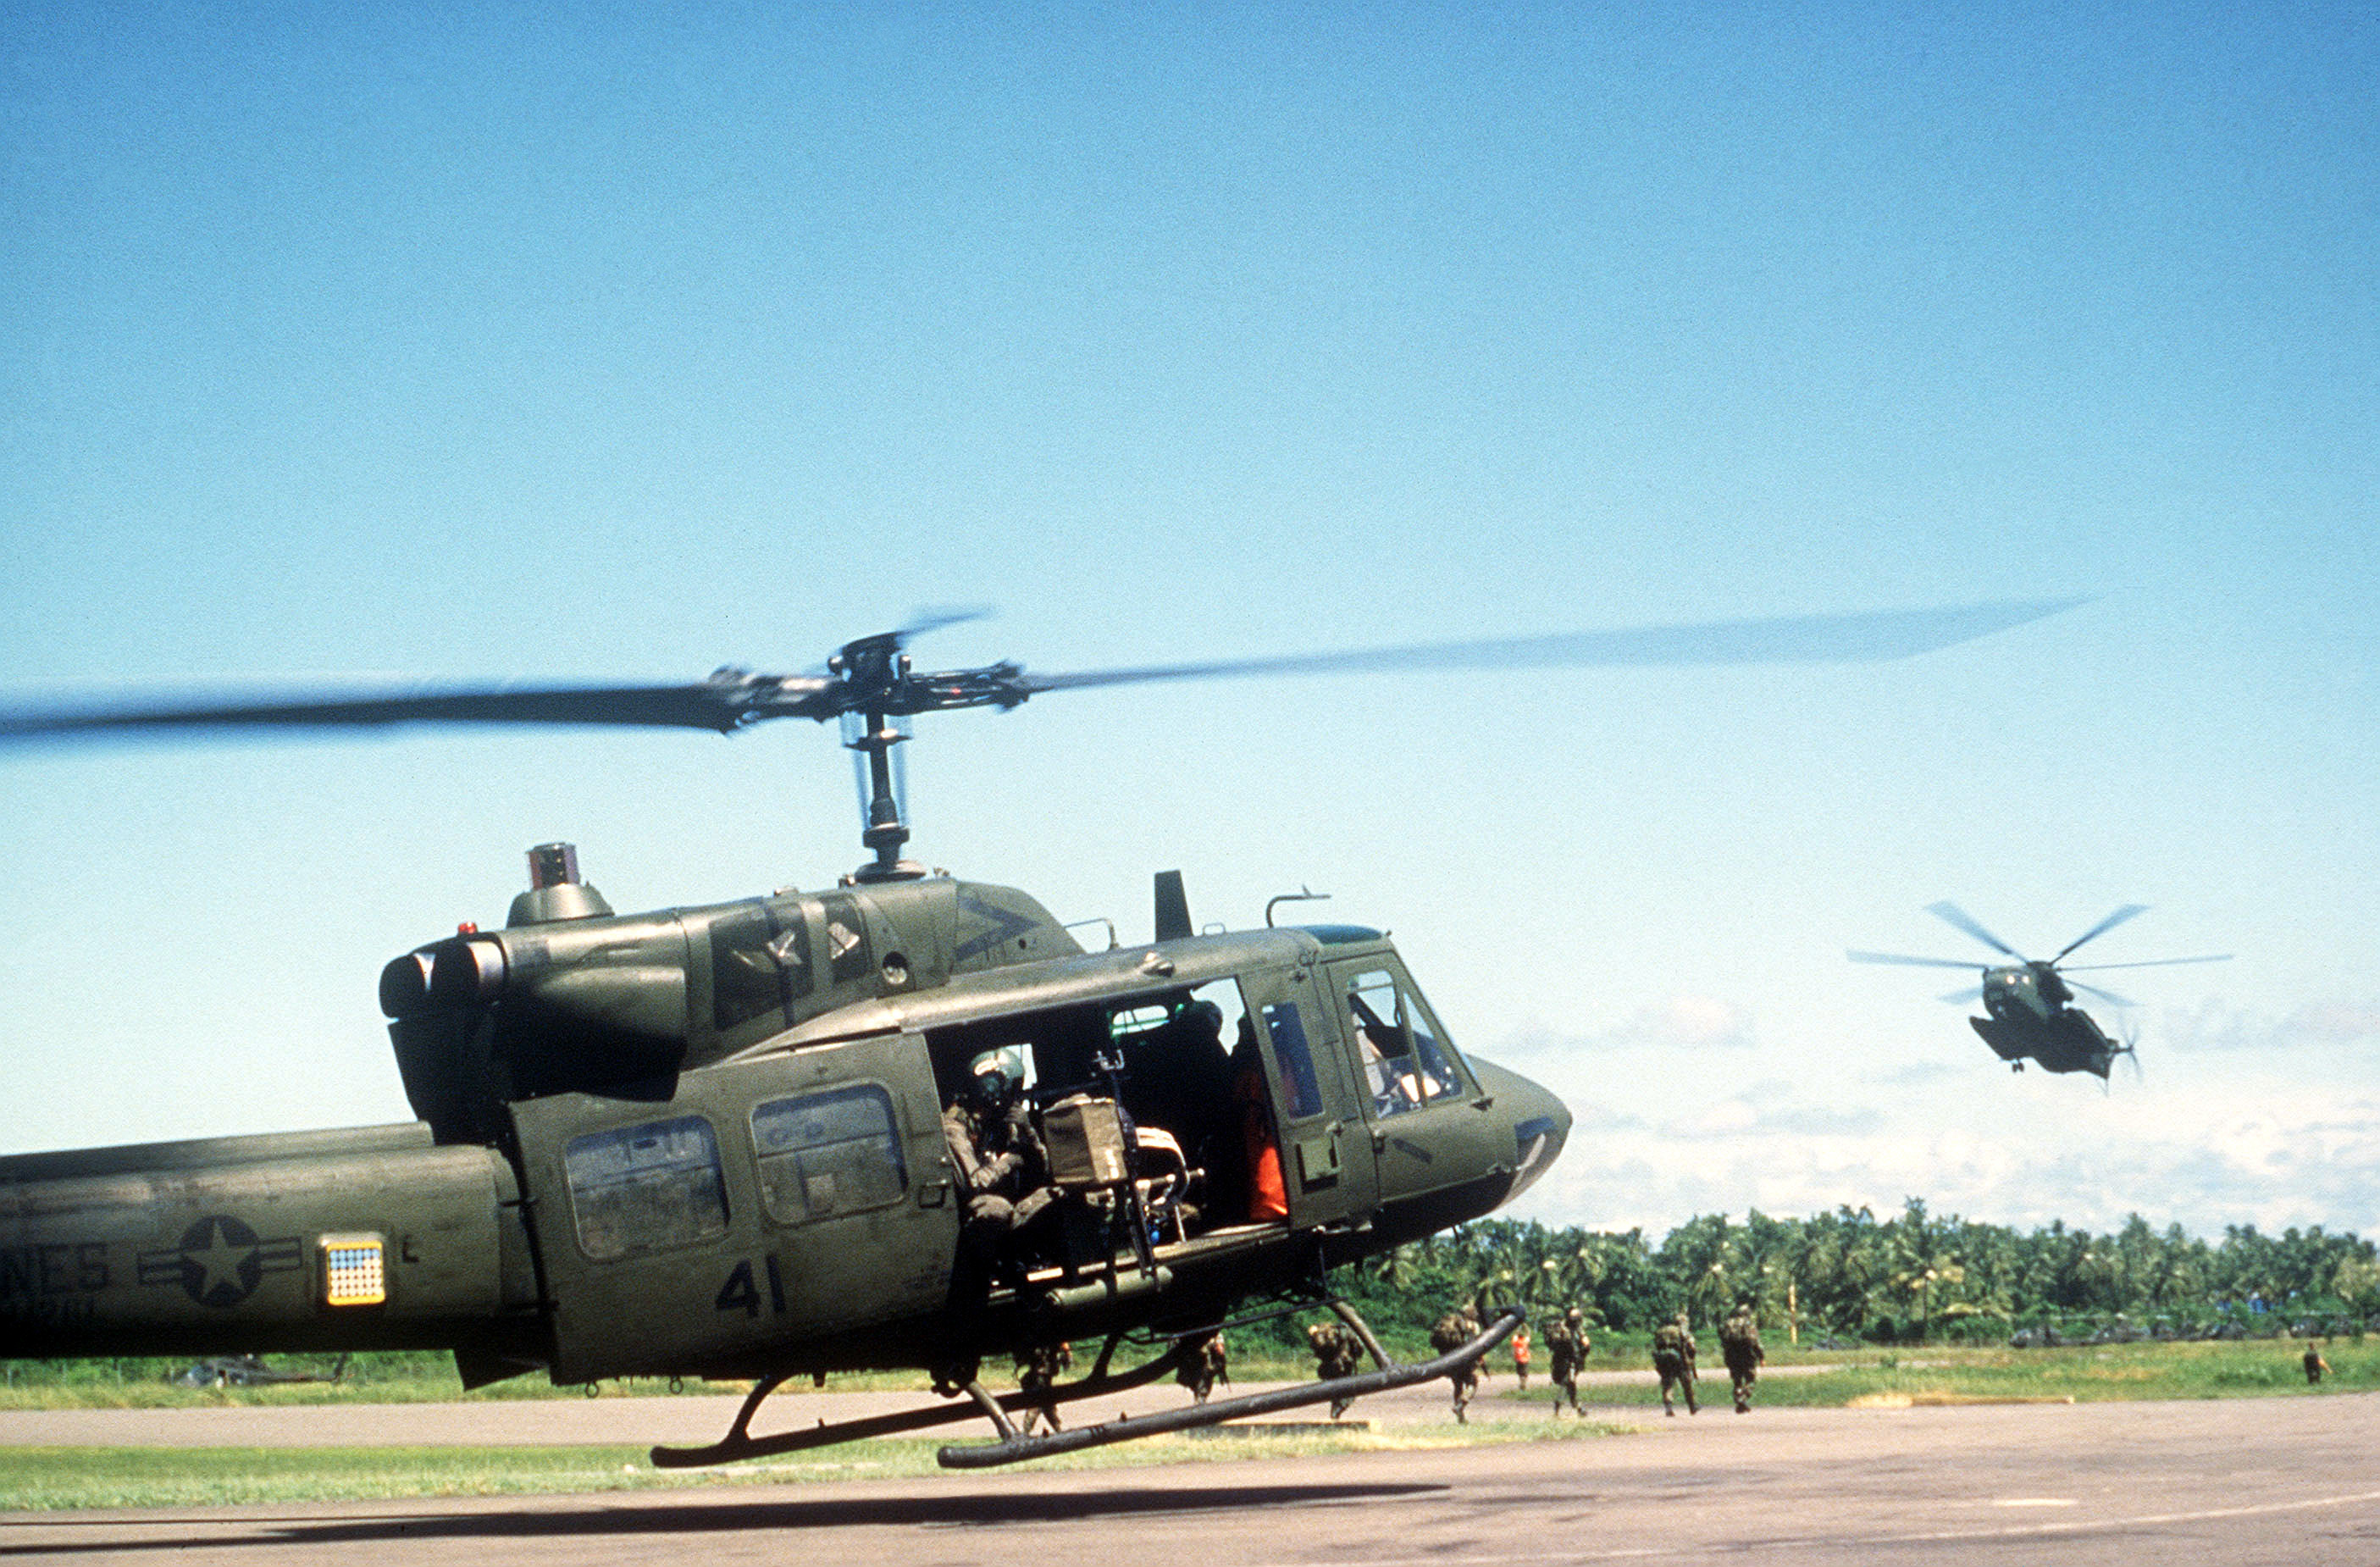 ch 53 helicopter with File Uh 1n And Ch 53d At Grenada 1983 on 050521 M 5607G 032 also EC 8B 9C EC BD 94 EB A5 B4 EC 8A A4 ED 82 A4 CH 53  EC 8B 9C  EC 8A A4 ED 83 A4 EB A6 AC EC 98 A8 additionally 19542 besides 10121984915 also Usa Marine Corps Sikorsky Ch 53e Super Stallion.